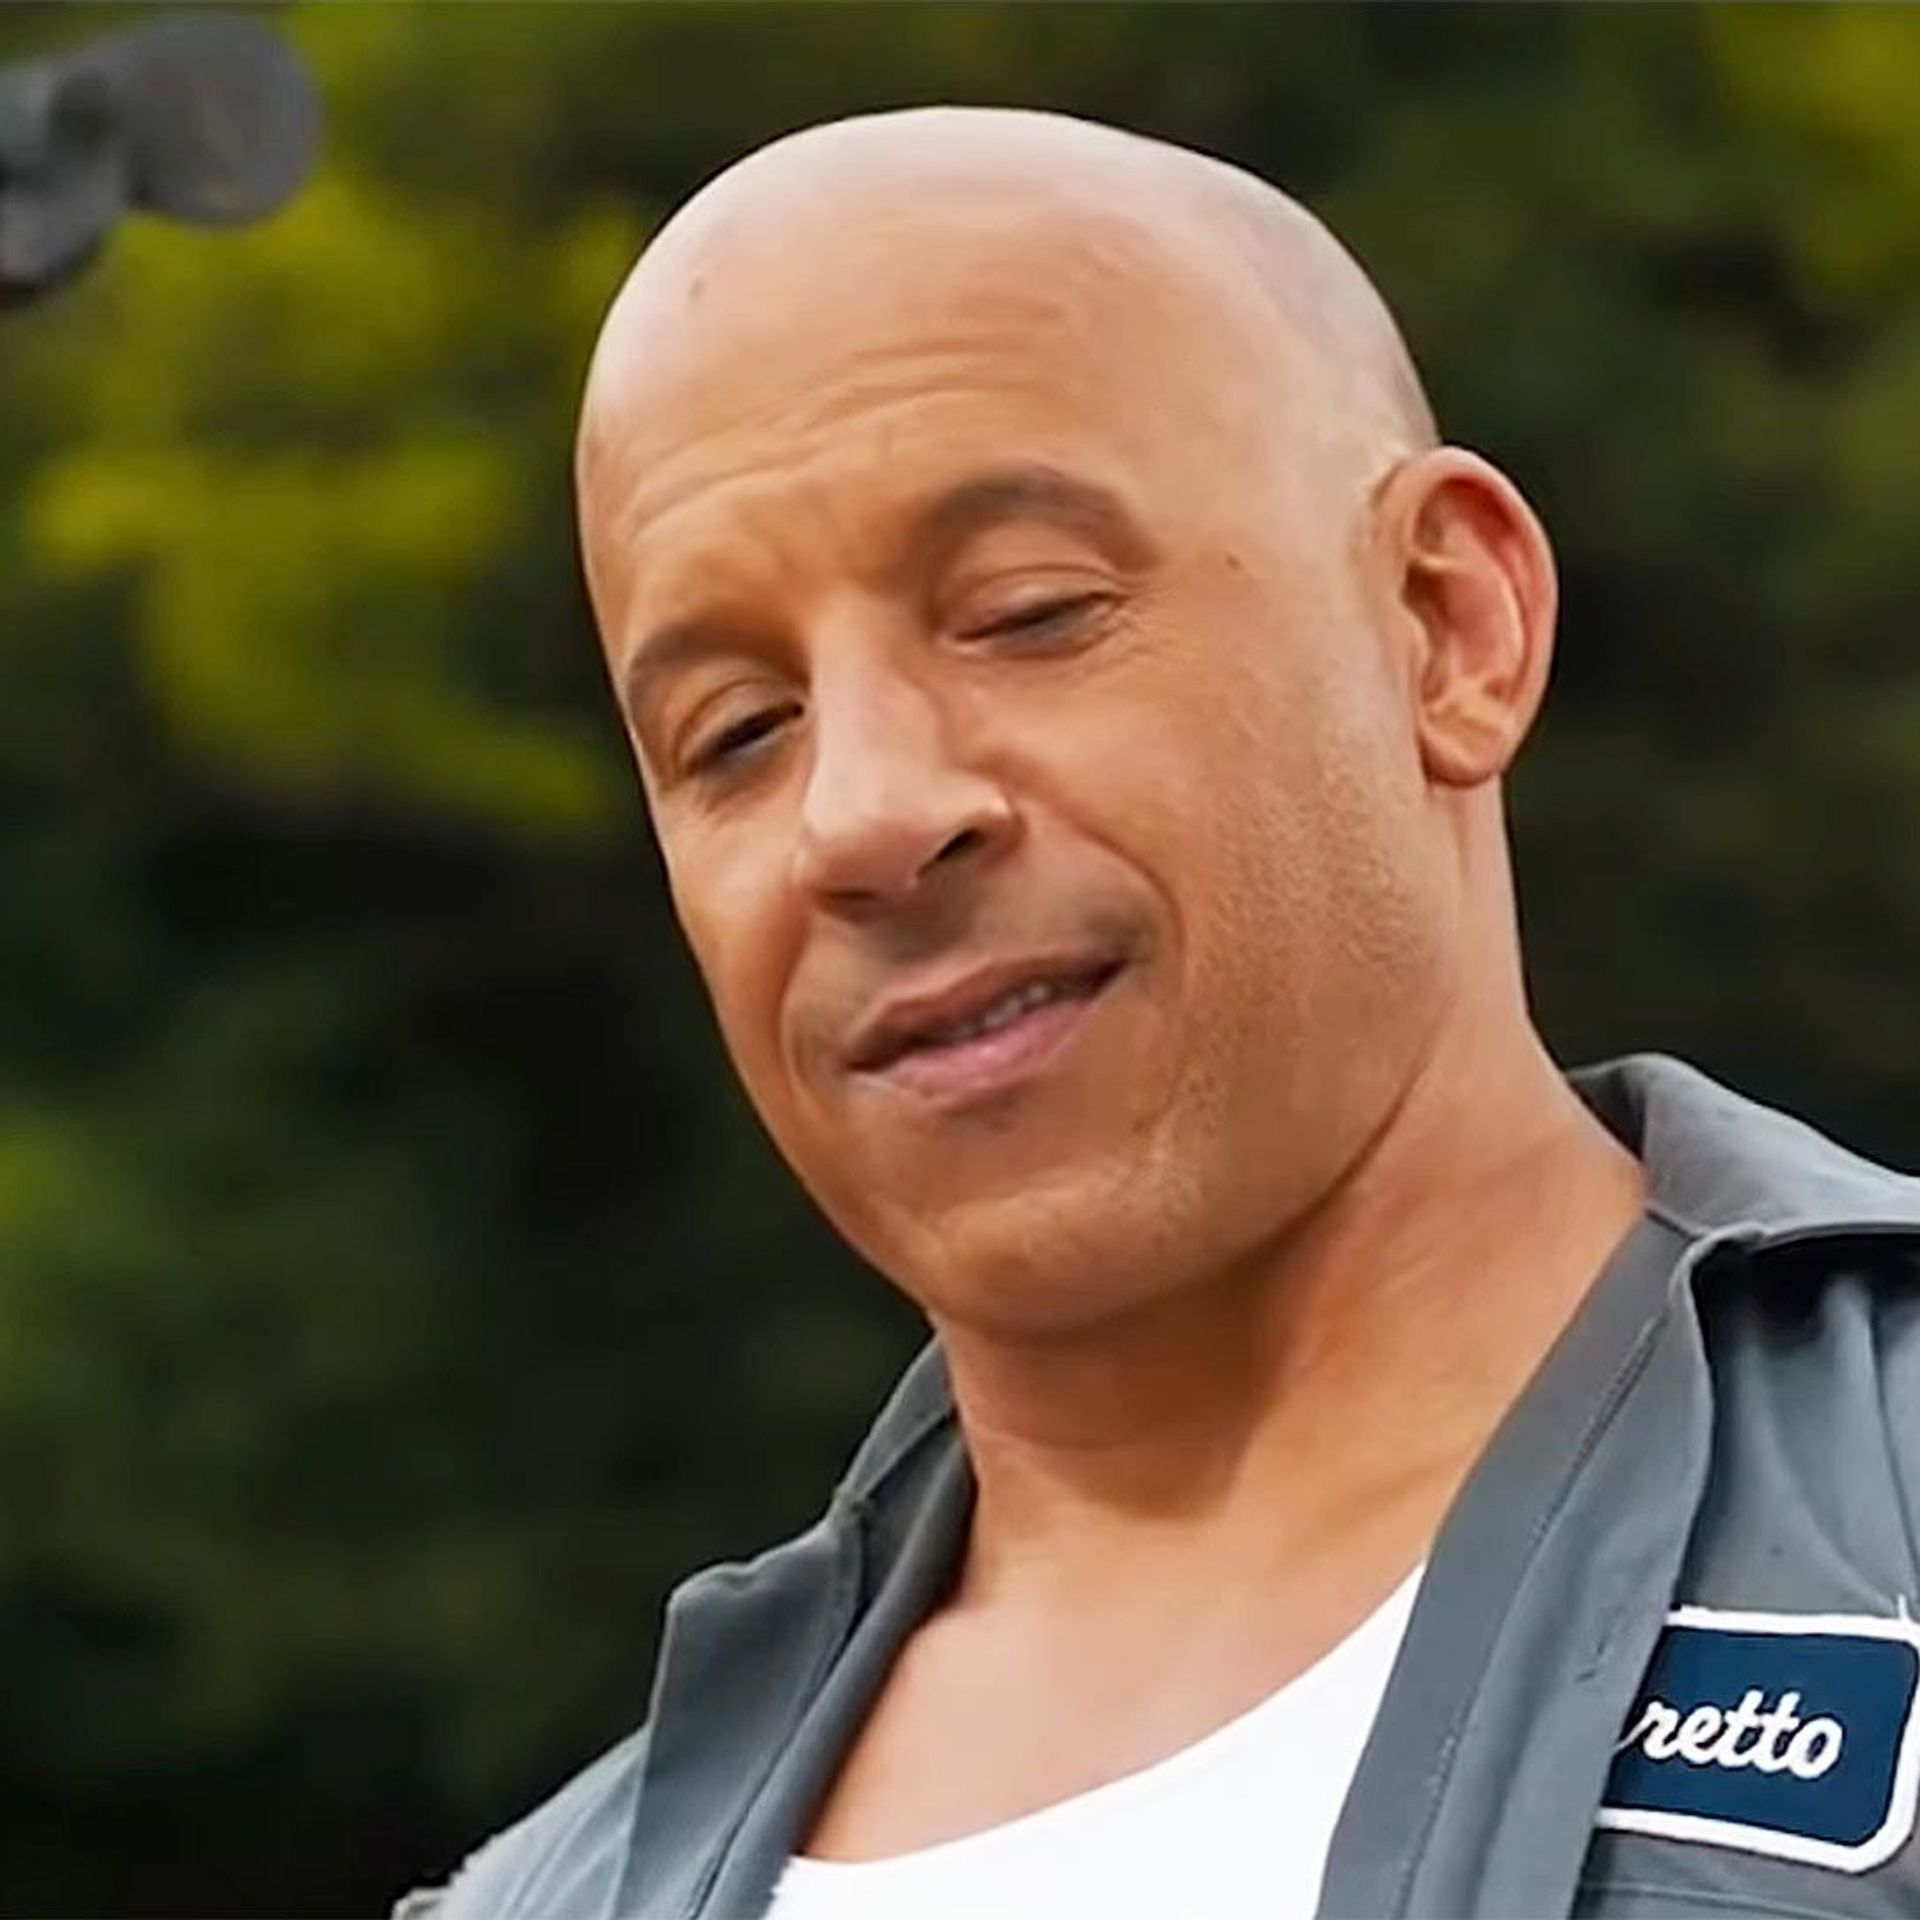 vin-diesel-fast-and-furious-9